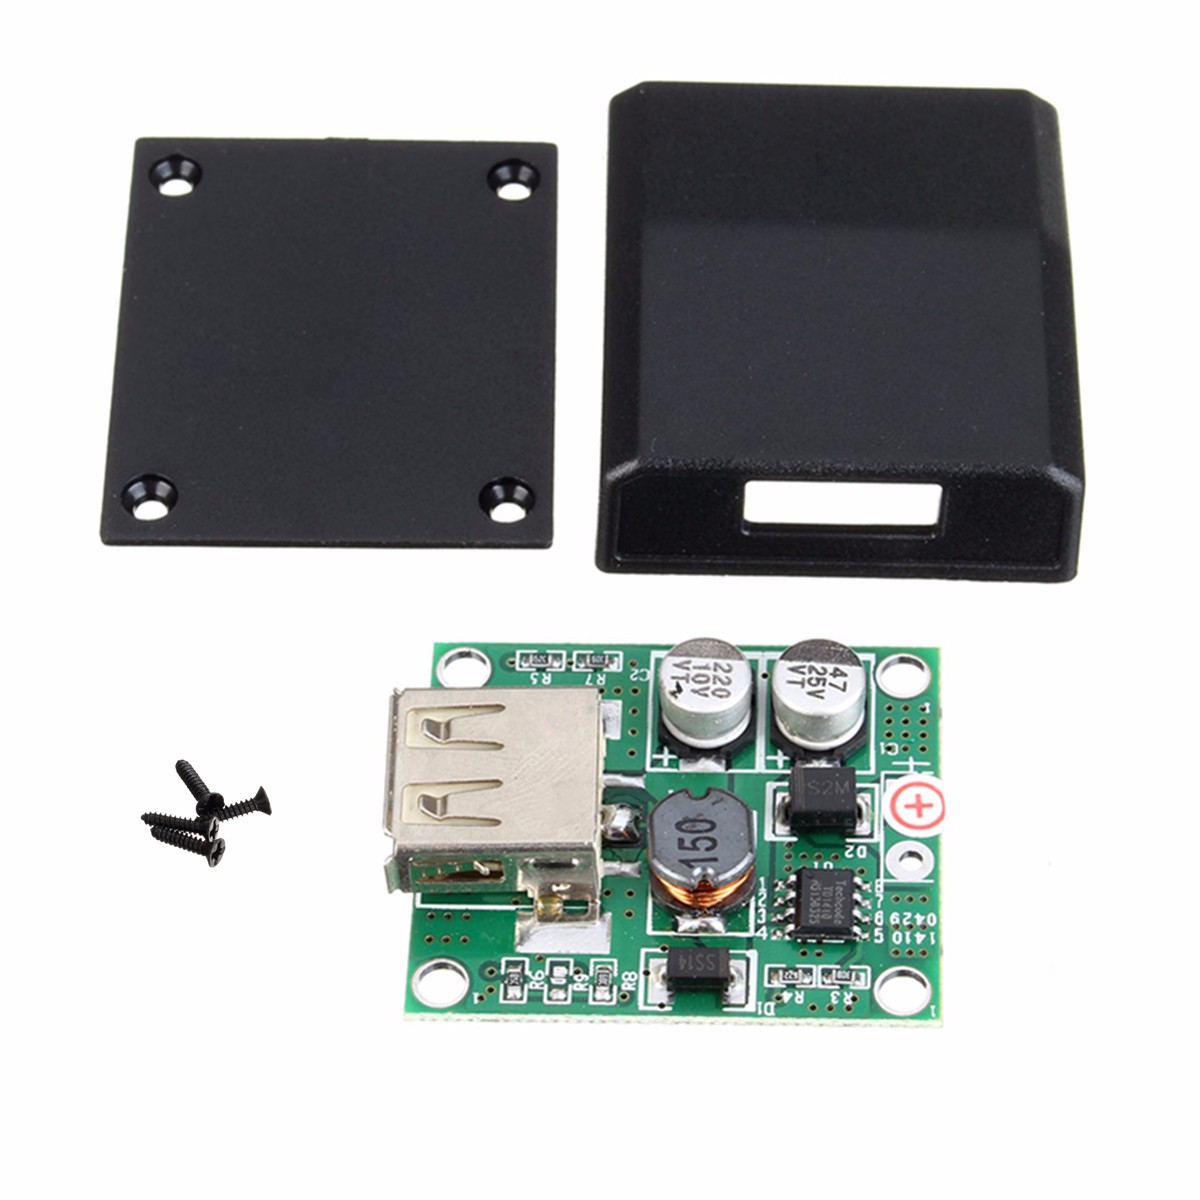 High Conversion Efficient USB Junction Box Solar Panel Micro USB Voltage Controller Converter Regulator for Charger 5V-18V to 2A(China (Mainland))